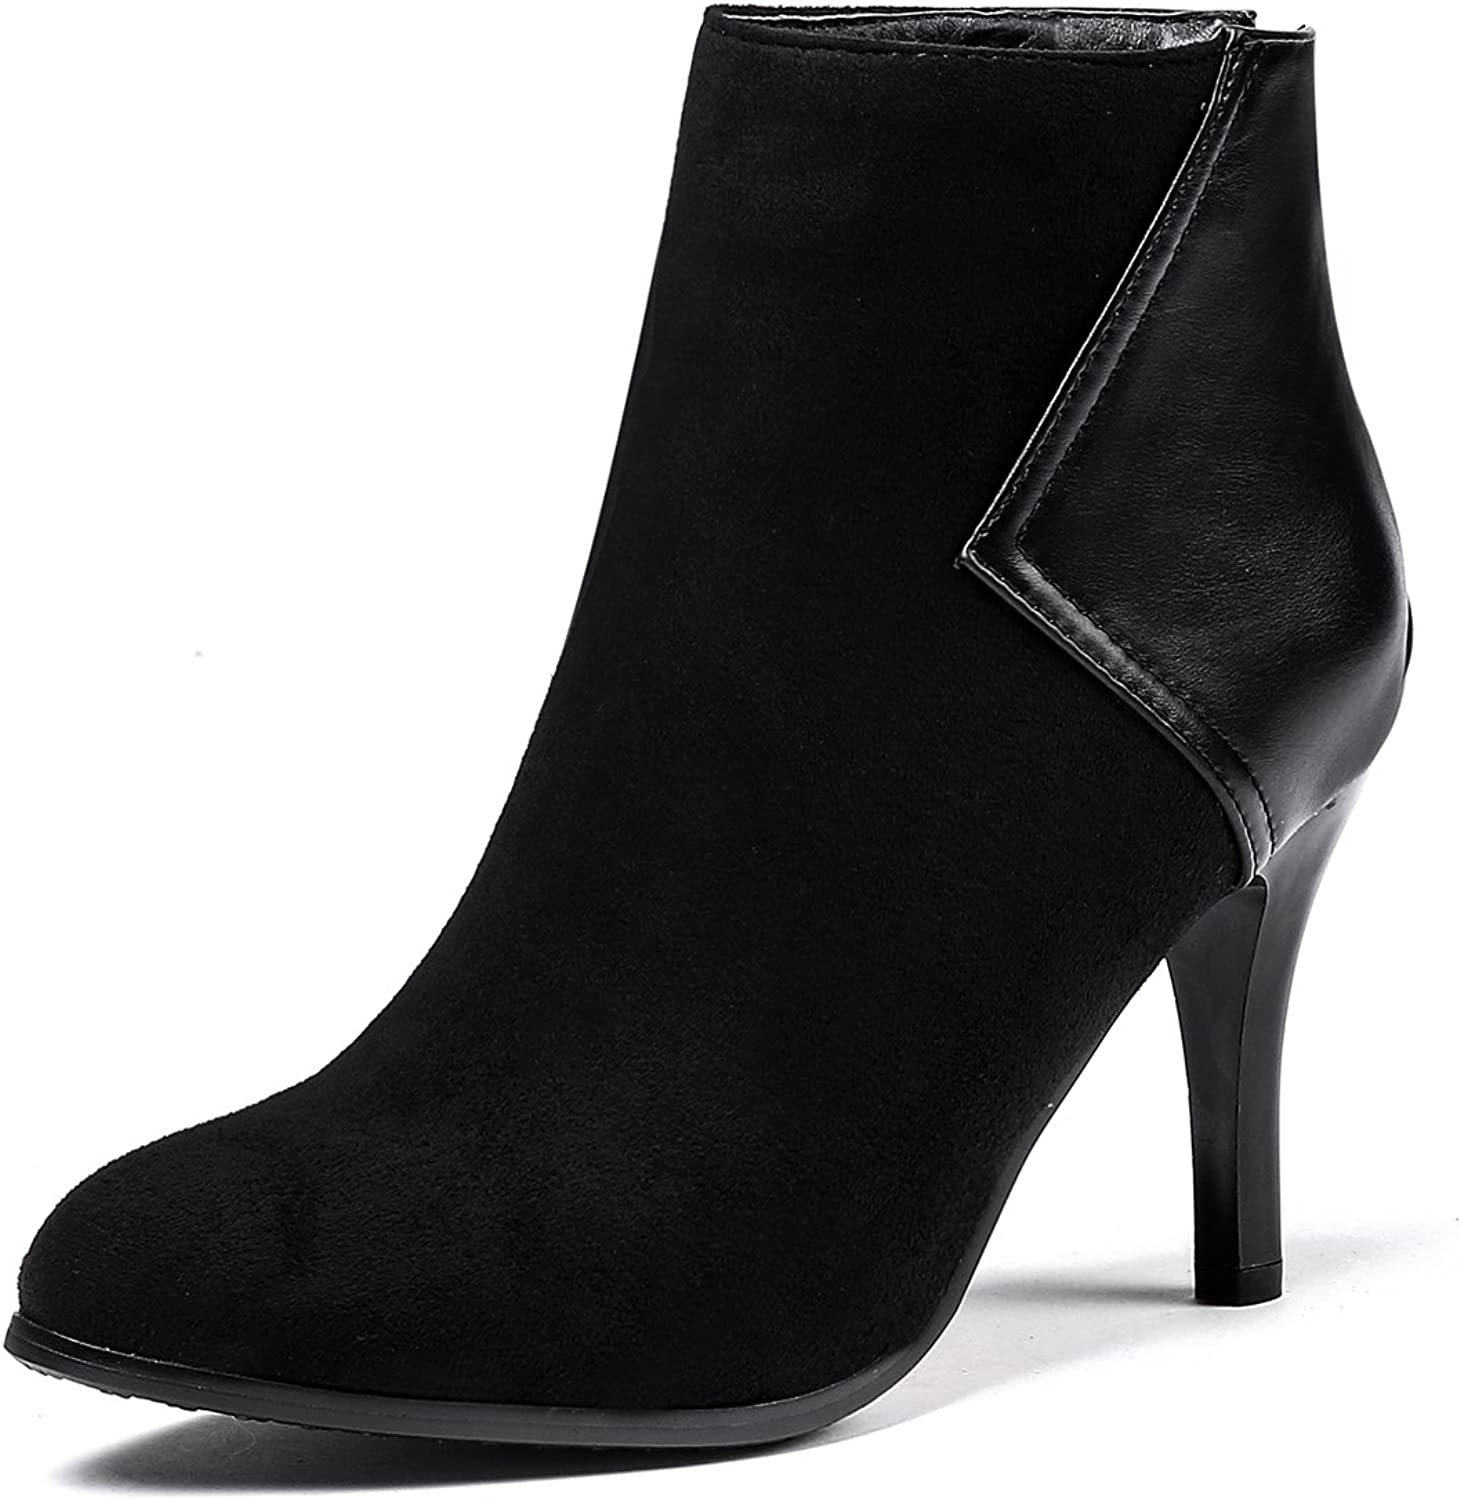 DoraTasia Women's Back Zipper Pointed Toe Nubuck Mid Heel Ankle Boots